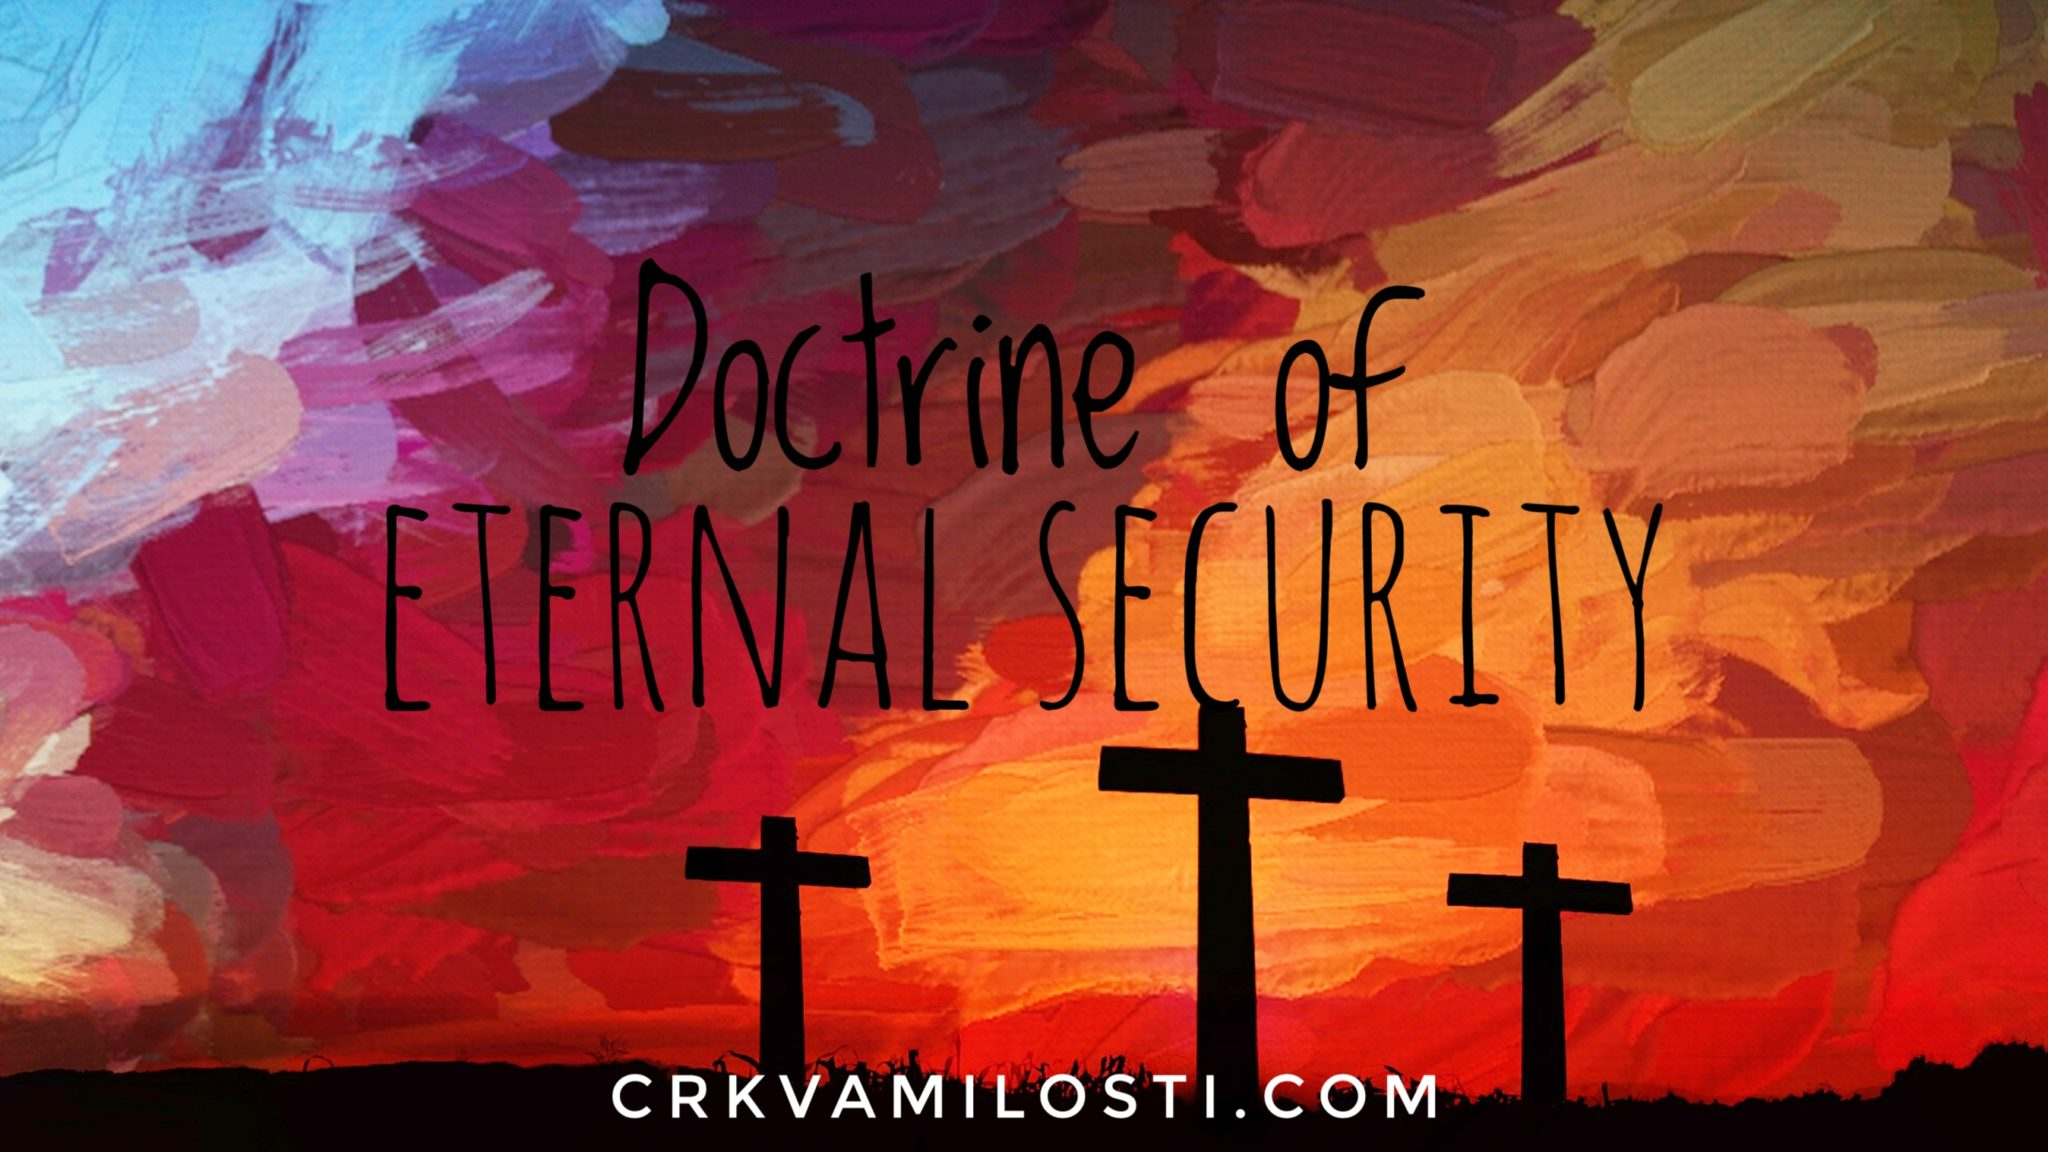 Doctrine of Eternal security, bible classes, http://edu.crkvamilosti.com Biblijska skola u Srbiji Srbija Beograd Biblijski fakultet Belgrade Academy Bible School